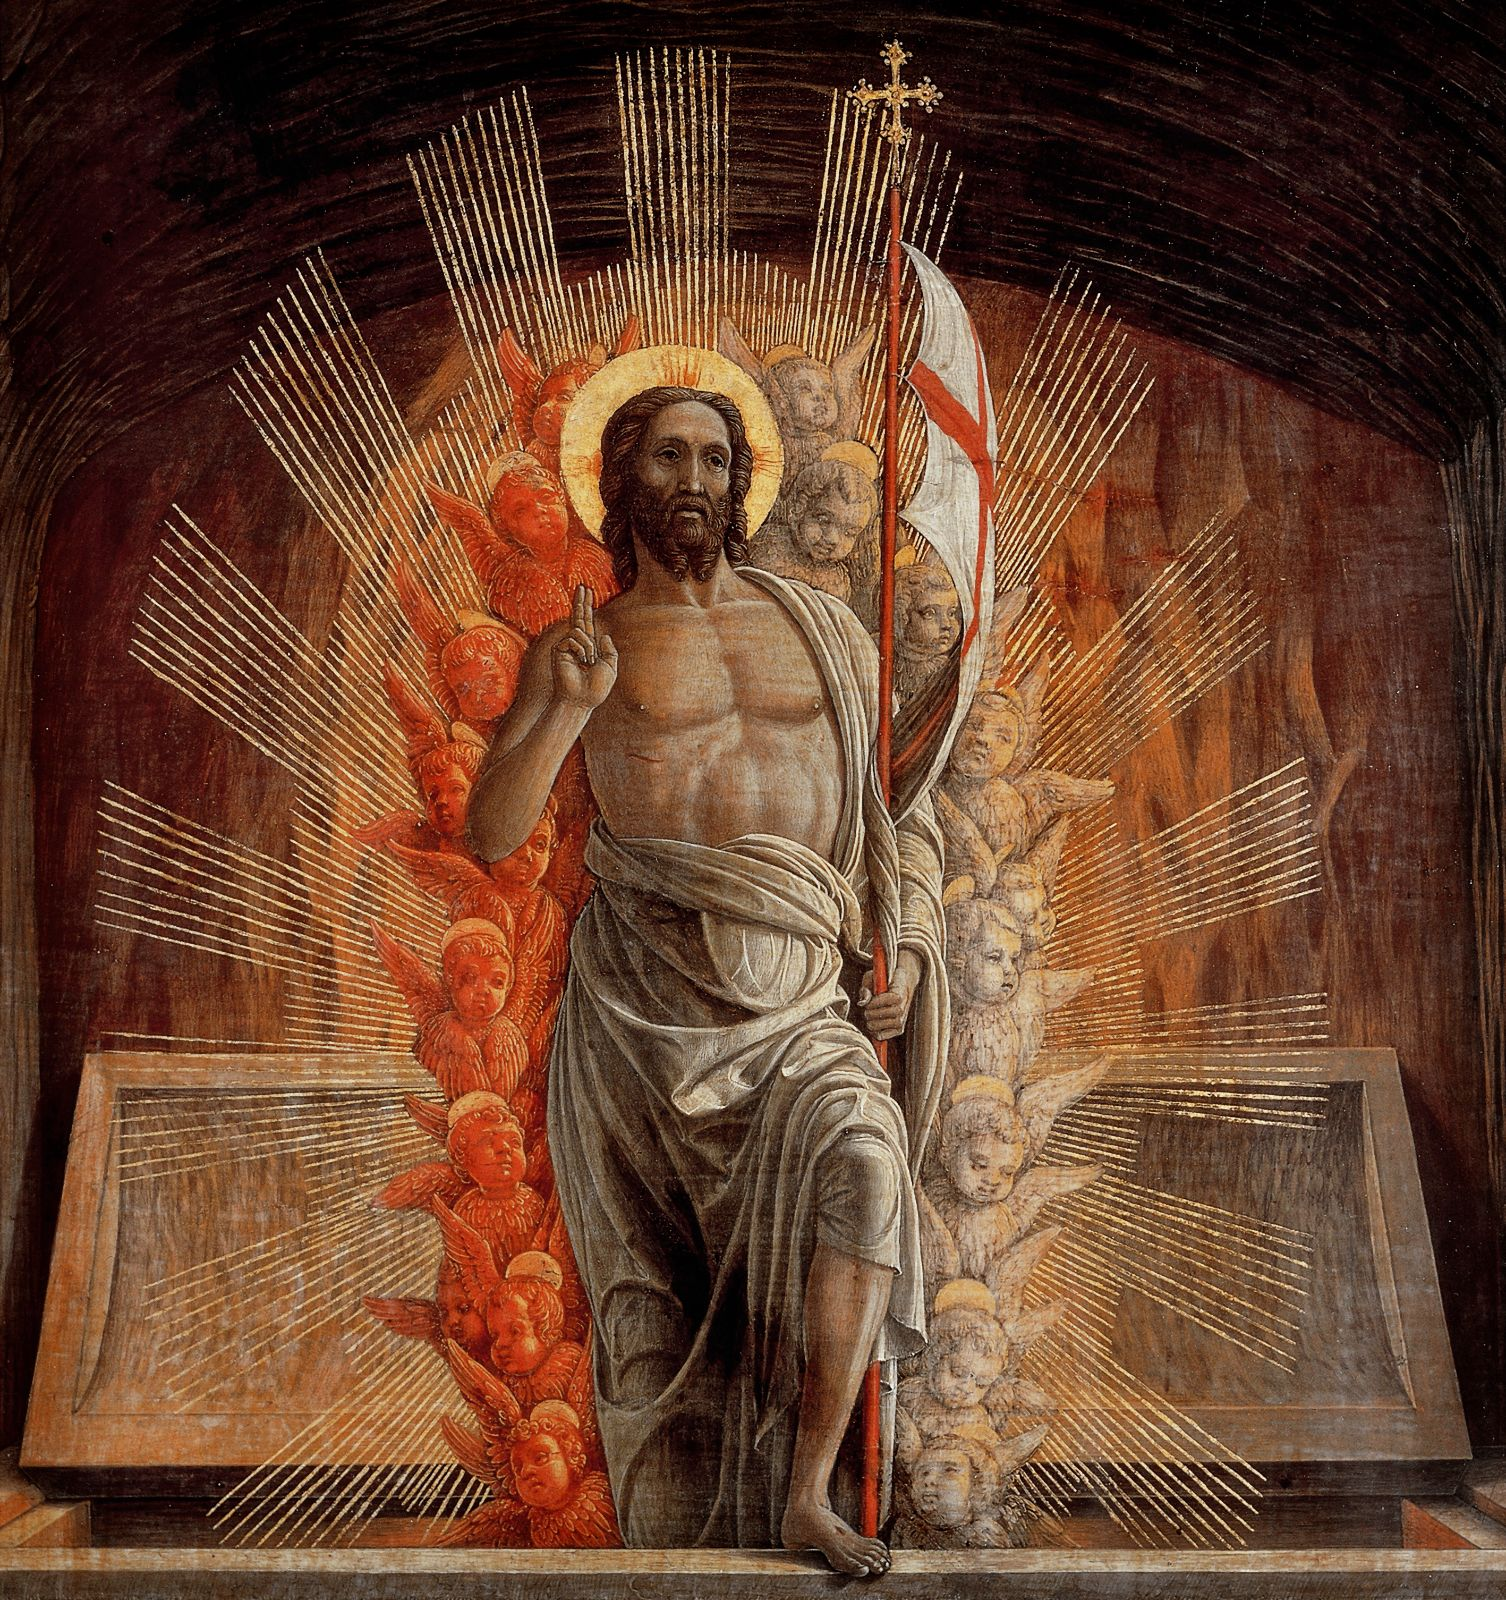 """The Risen Christ is depicted in the painting """"Resurrection"""" by 15th-century Italian master Andrea Mantegna. Easter, the chief feast in the liturgical calendars of all Christian churches, commemorates Christ's resurrection from the dead. Easter is March 27 this year. (CNS/Bridgeman Images) Editors: This image is made available for one-time editorial use online and in print through April 25, 2016. No use is permitted after April 25, 2016."""